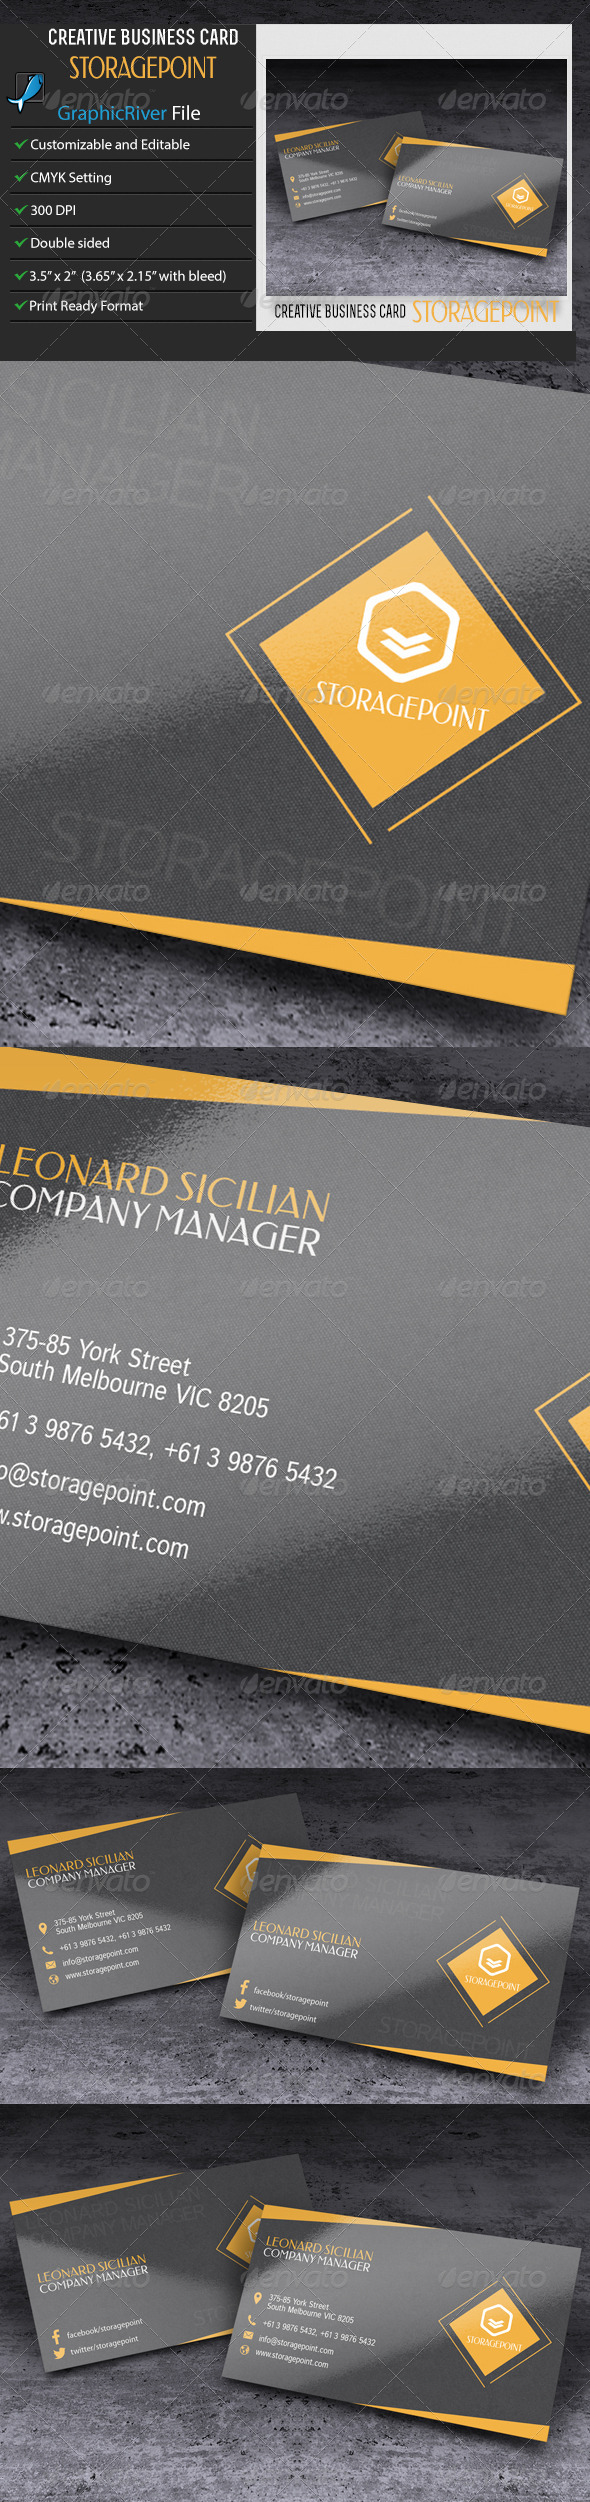 GraphicRiver Business Card StoragePoint 7812855